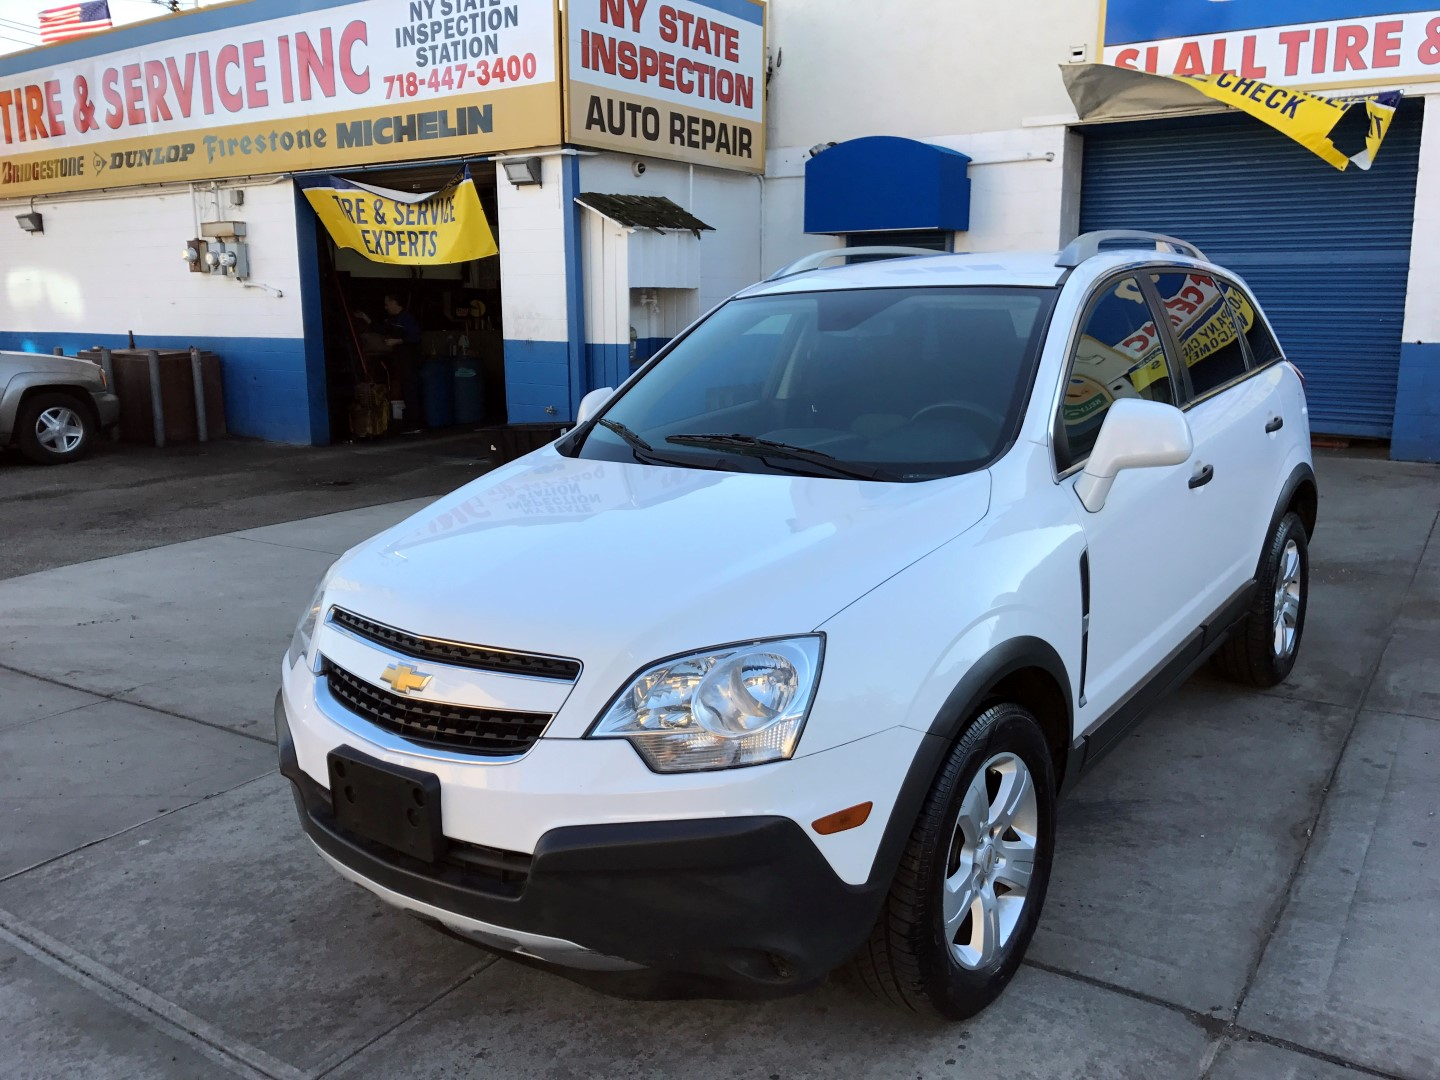 Used Car - 2013 Chevrolet Captiva LS for Sale in Staten Island, NY